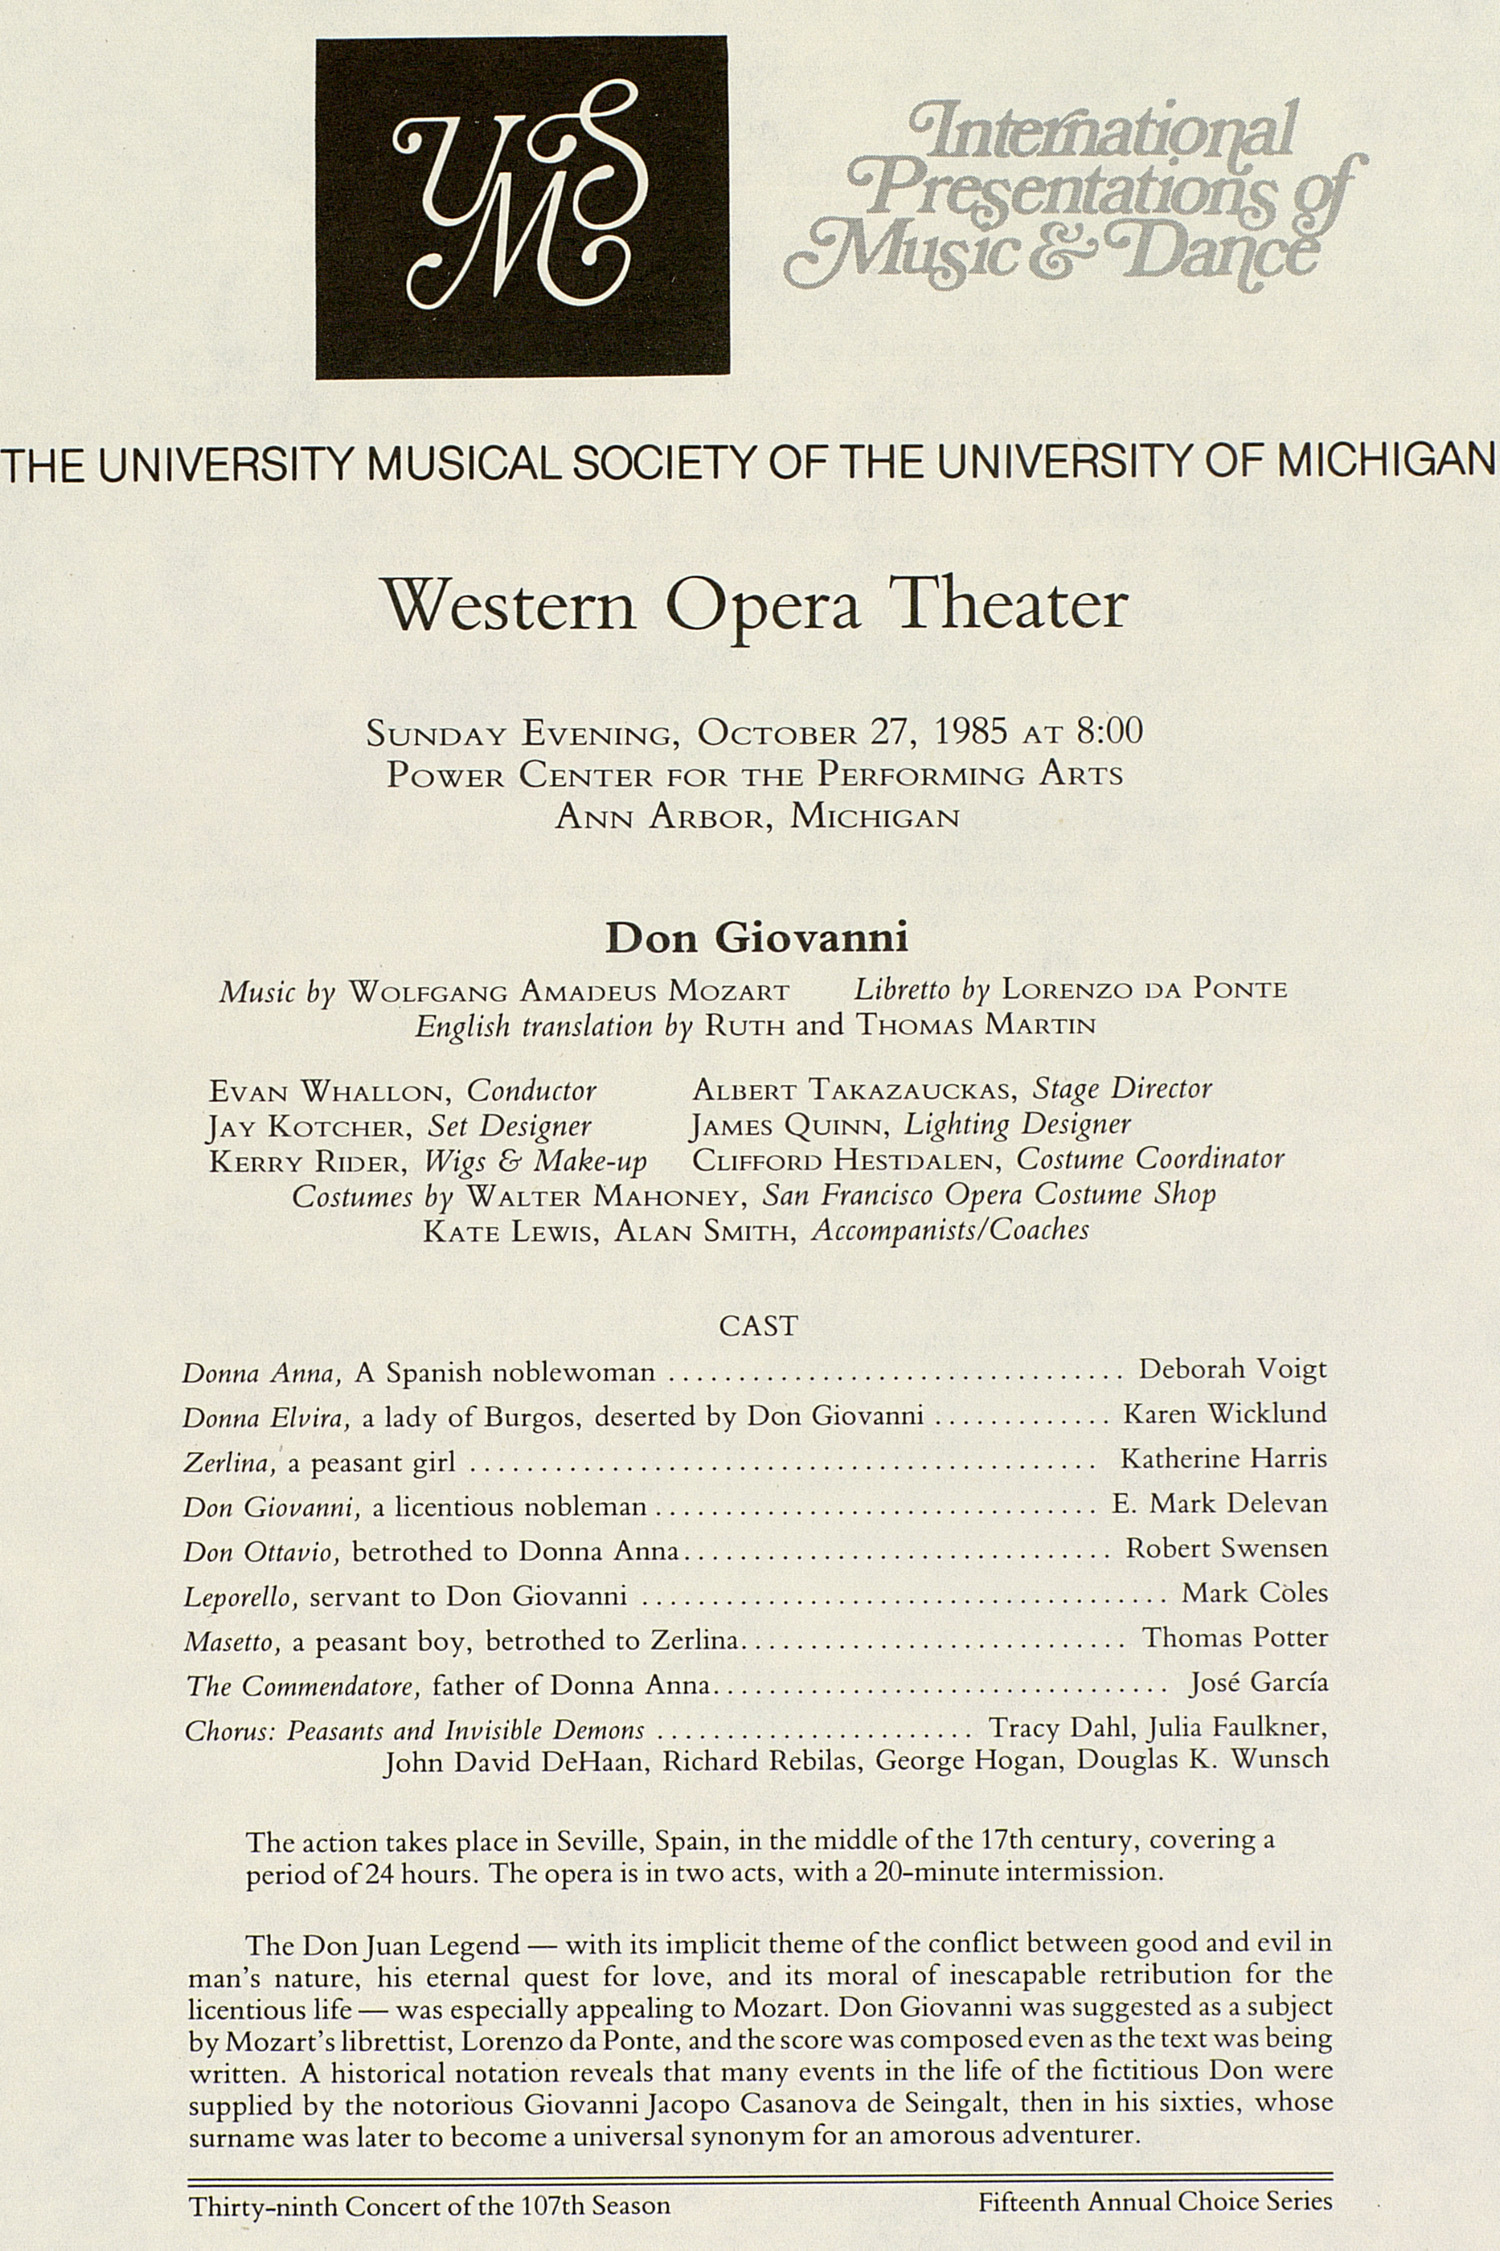 UMS Concert Program, October 27, 1985: International Presentations Of Music & Dance -- Western Opera Theater image